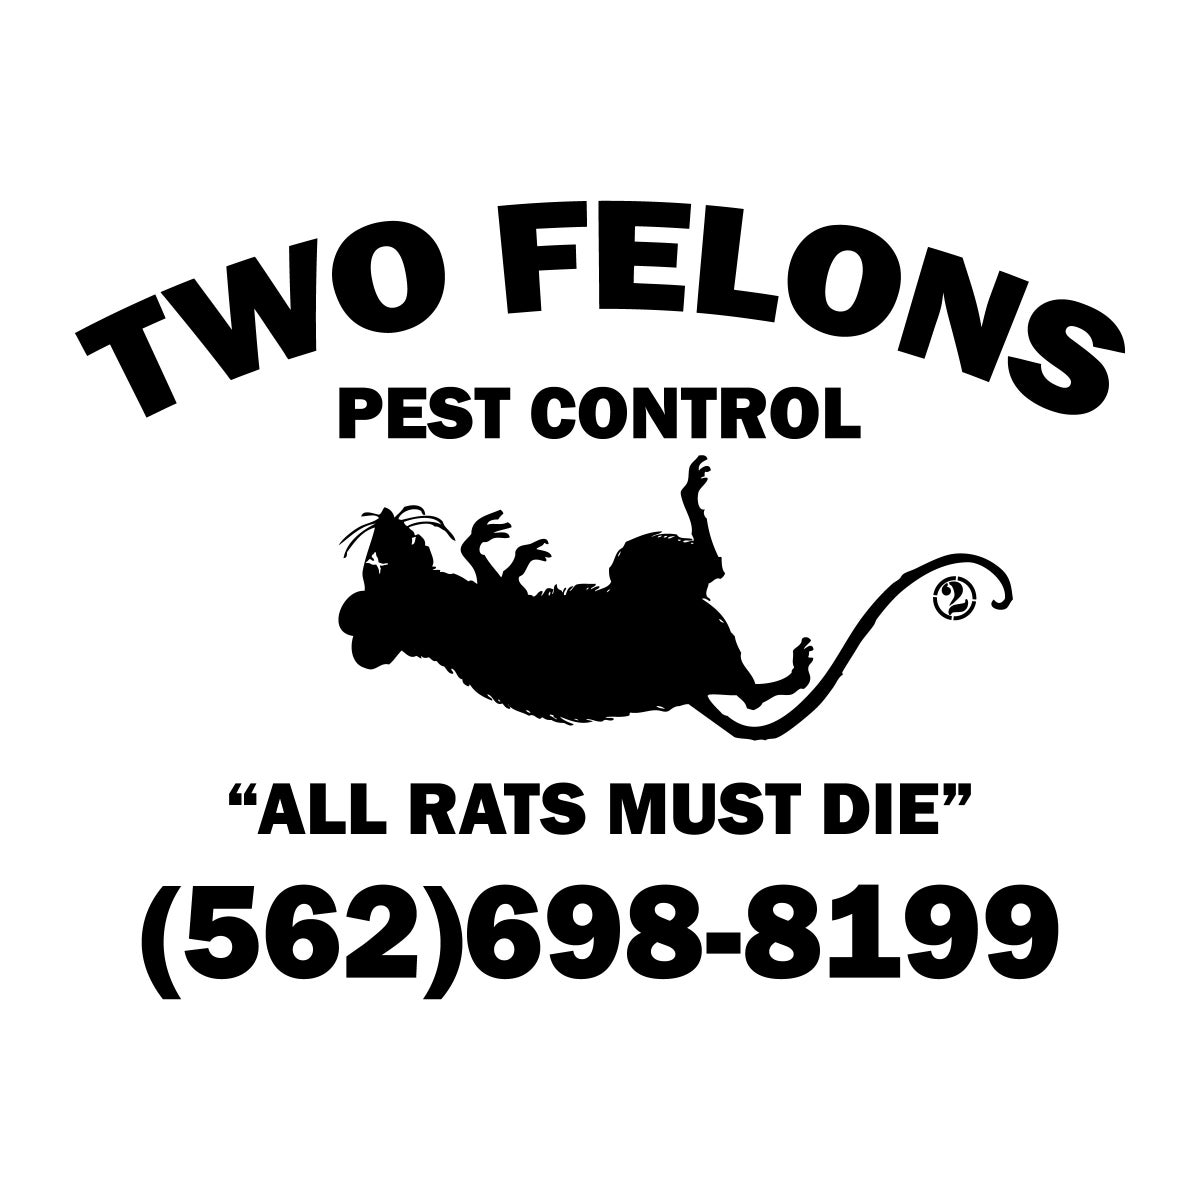 "Two Felons ""Pest Control"" (white)"